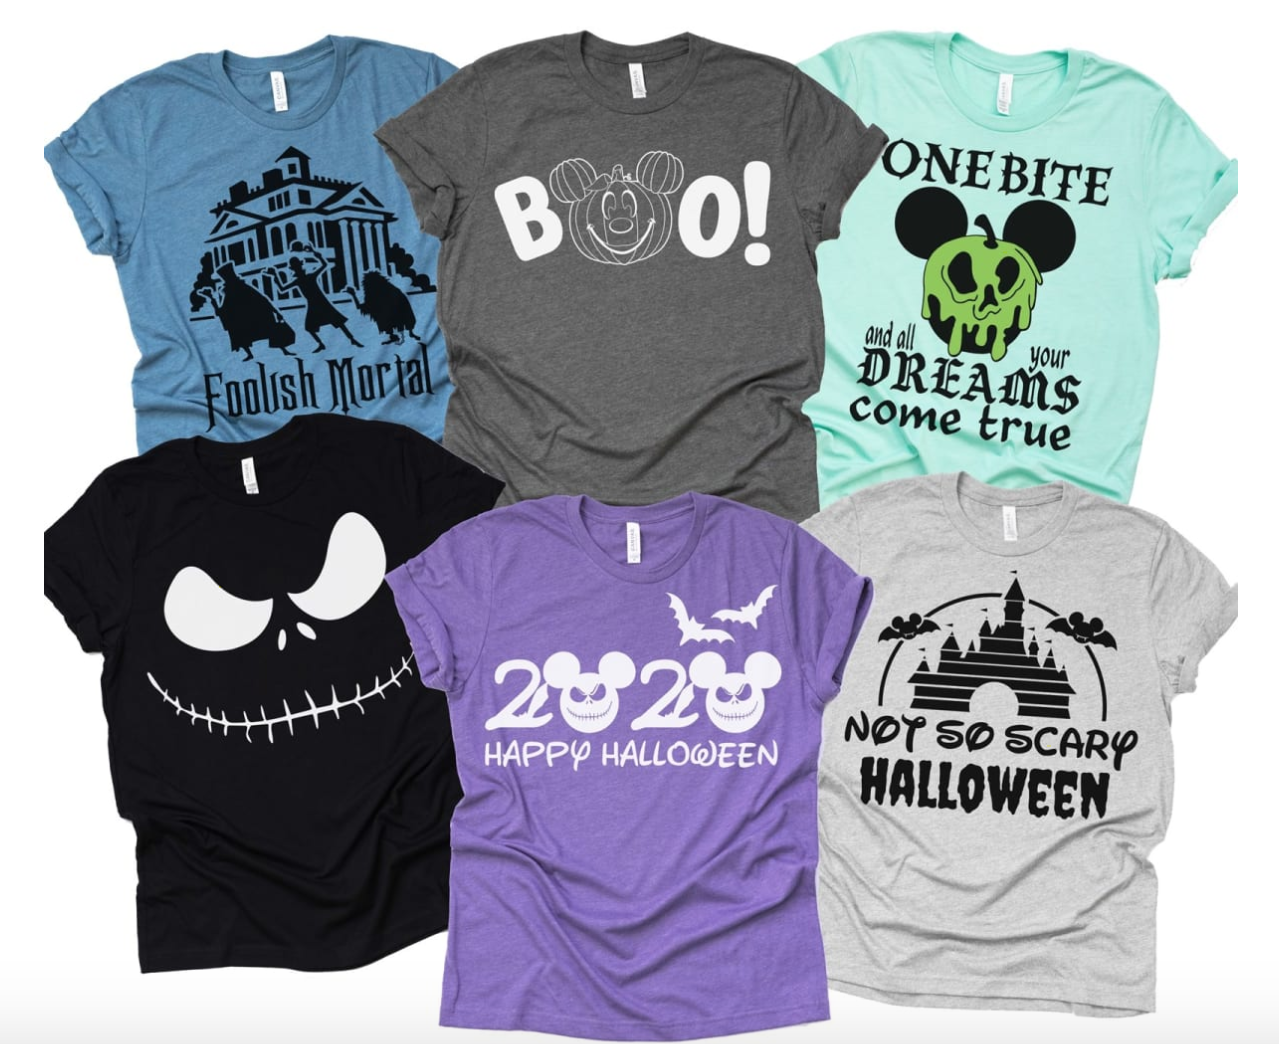 2020 Disney Halloween Shirts Pics These Halloween Shirts Inspired by the Disney Parks Will Give Your